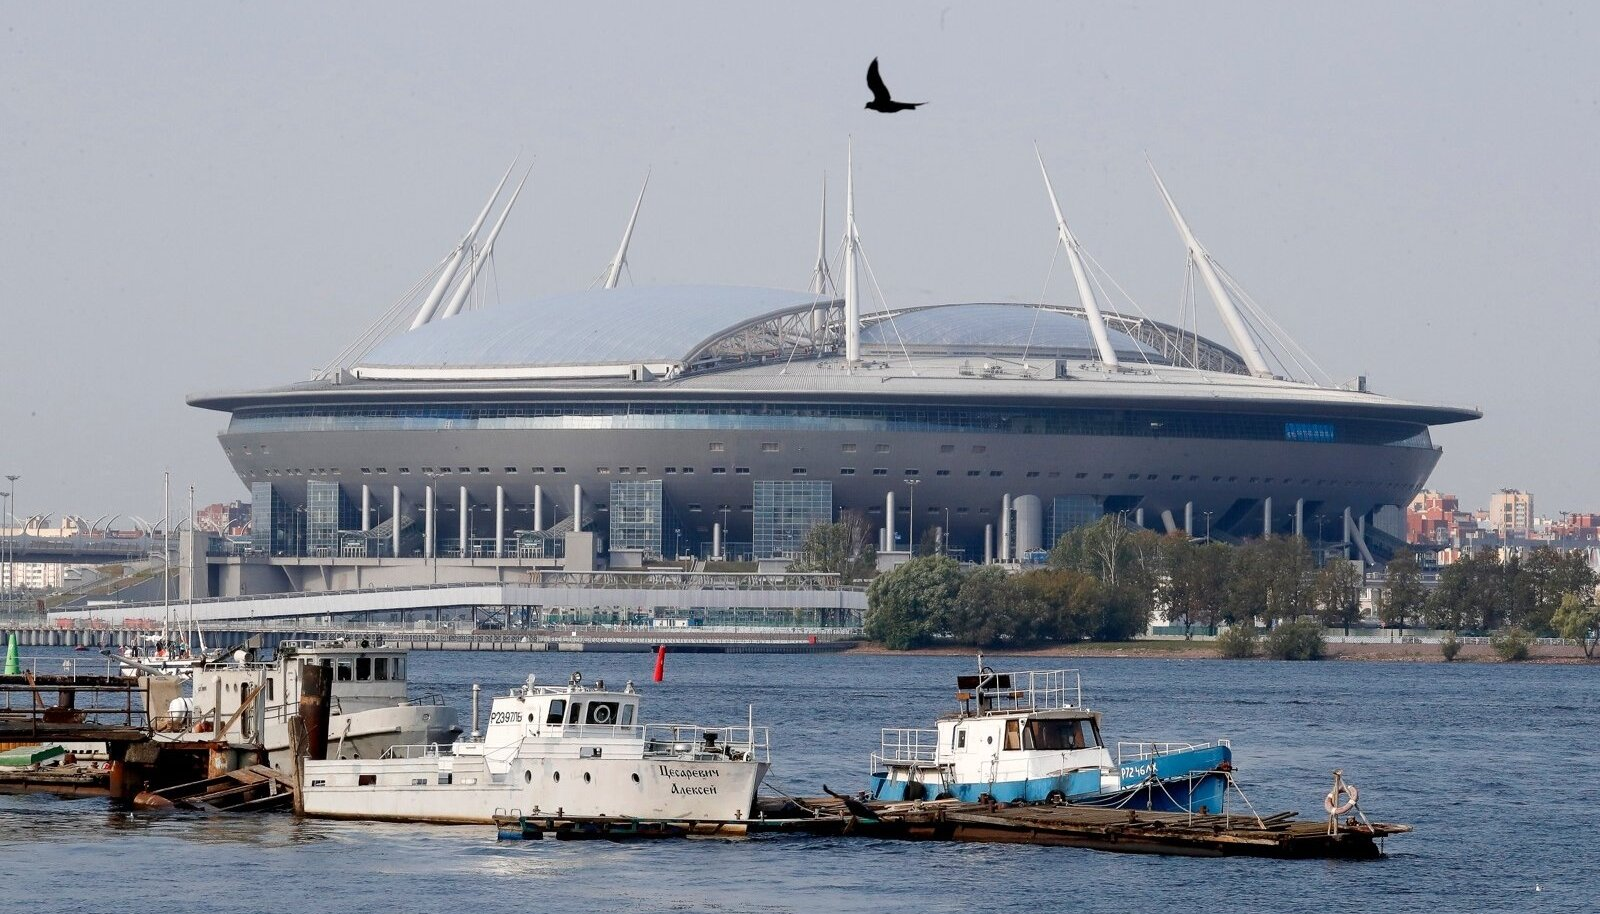 St. Petersburg will host the UEFA Champions League final 2021